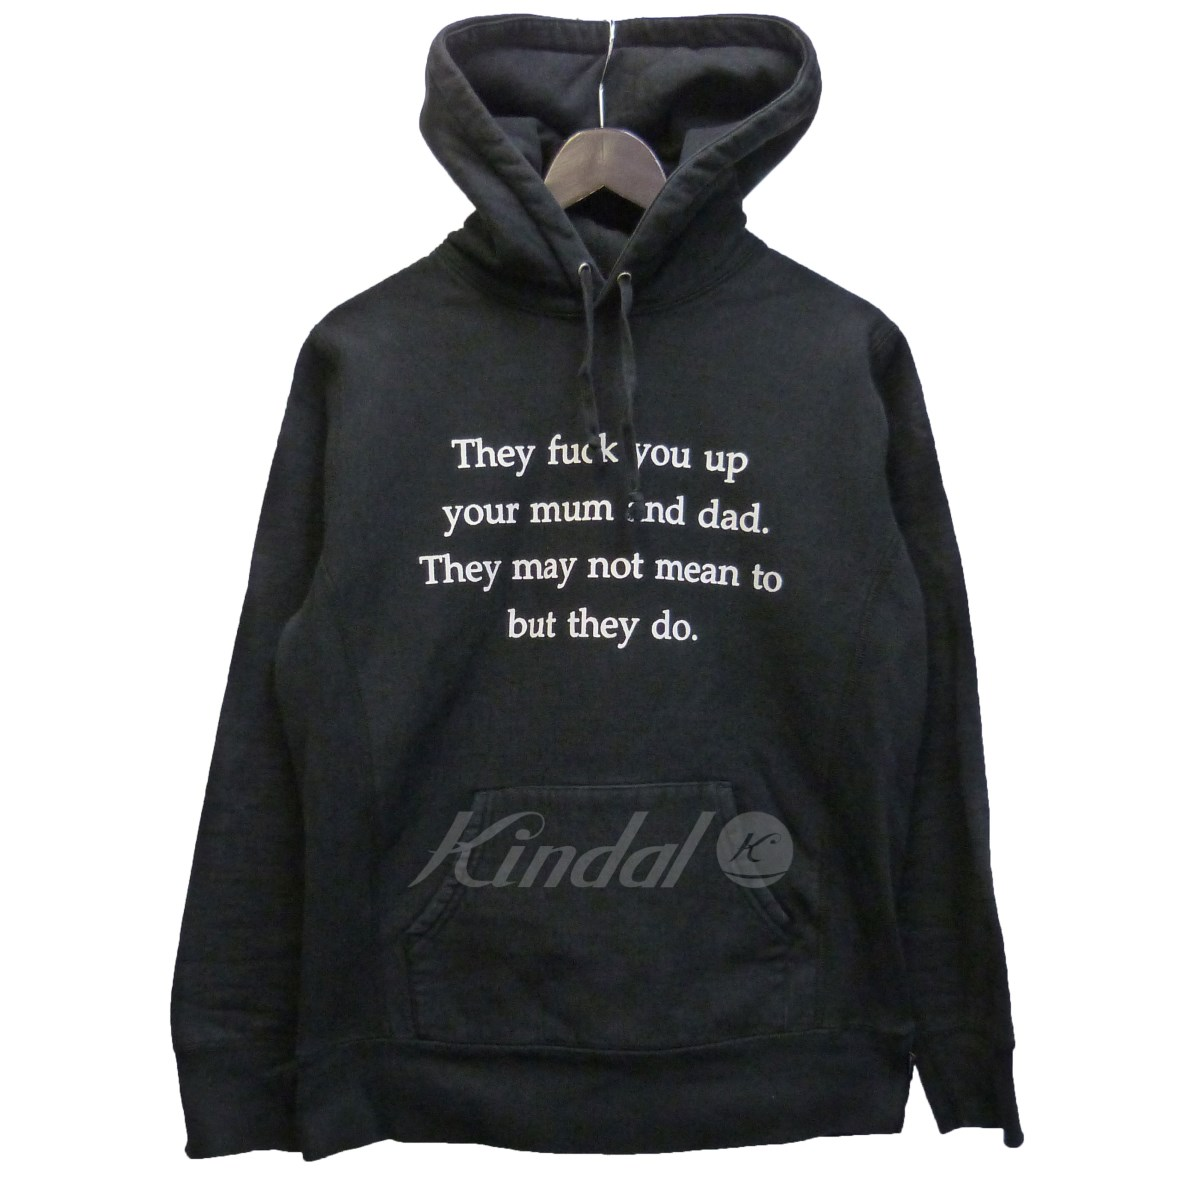 【中古】SUPREME 16AW 「They Fuck You Up Hooded Sweatshirt」 【送料無料】 【052538】 【KIND1550】